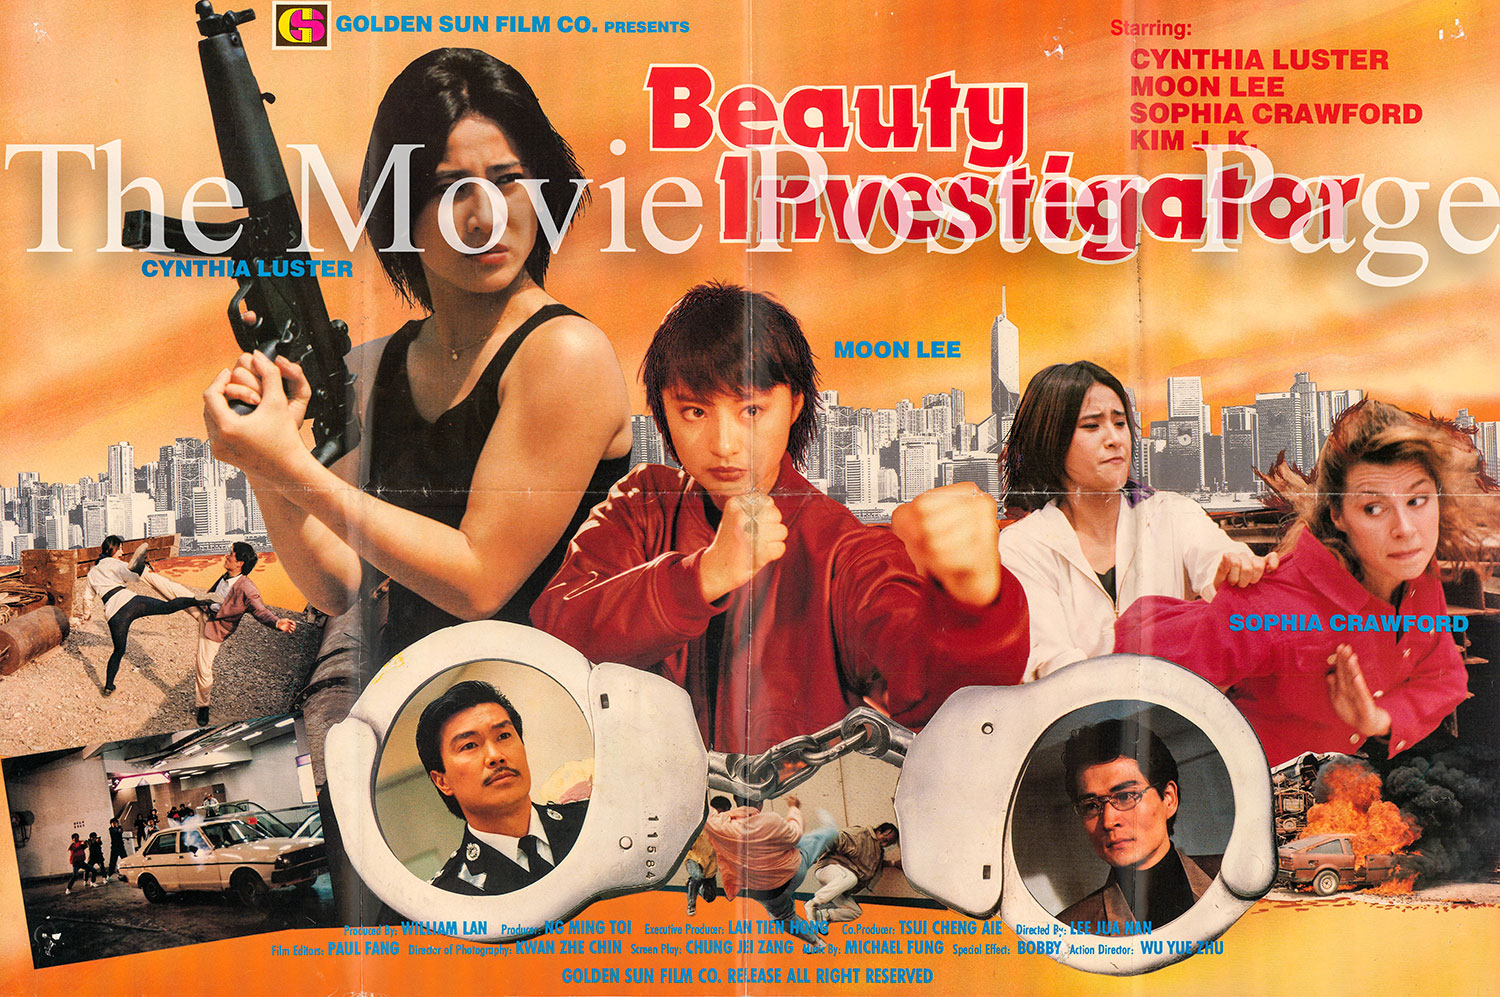 Pictured is a Hong Kong poster for the 1992 Tso Nam Lee film Beauty Investigator starring Moon Lee.